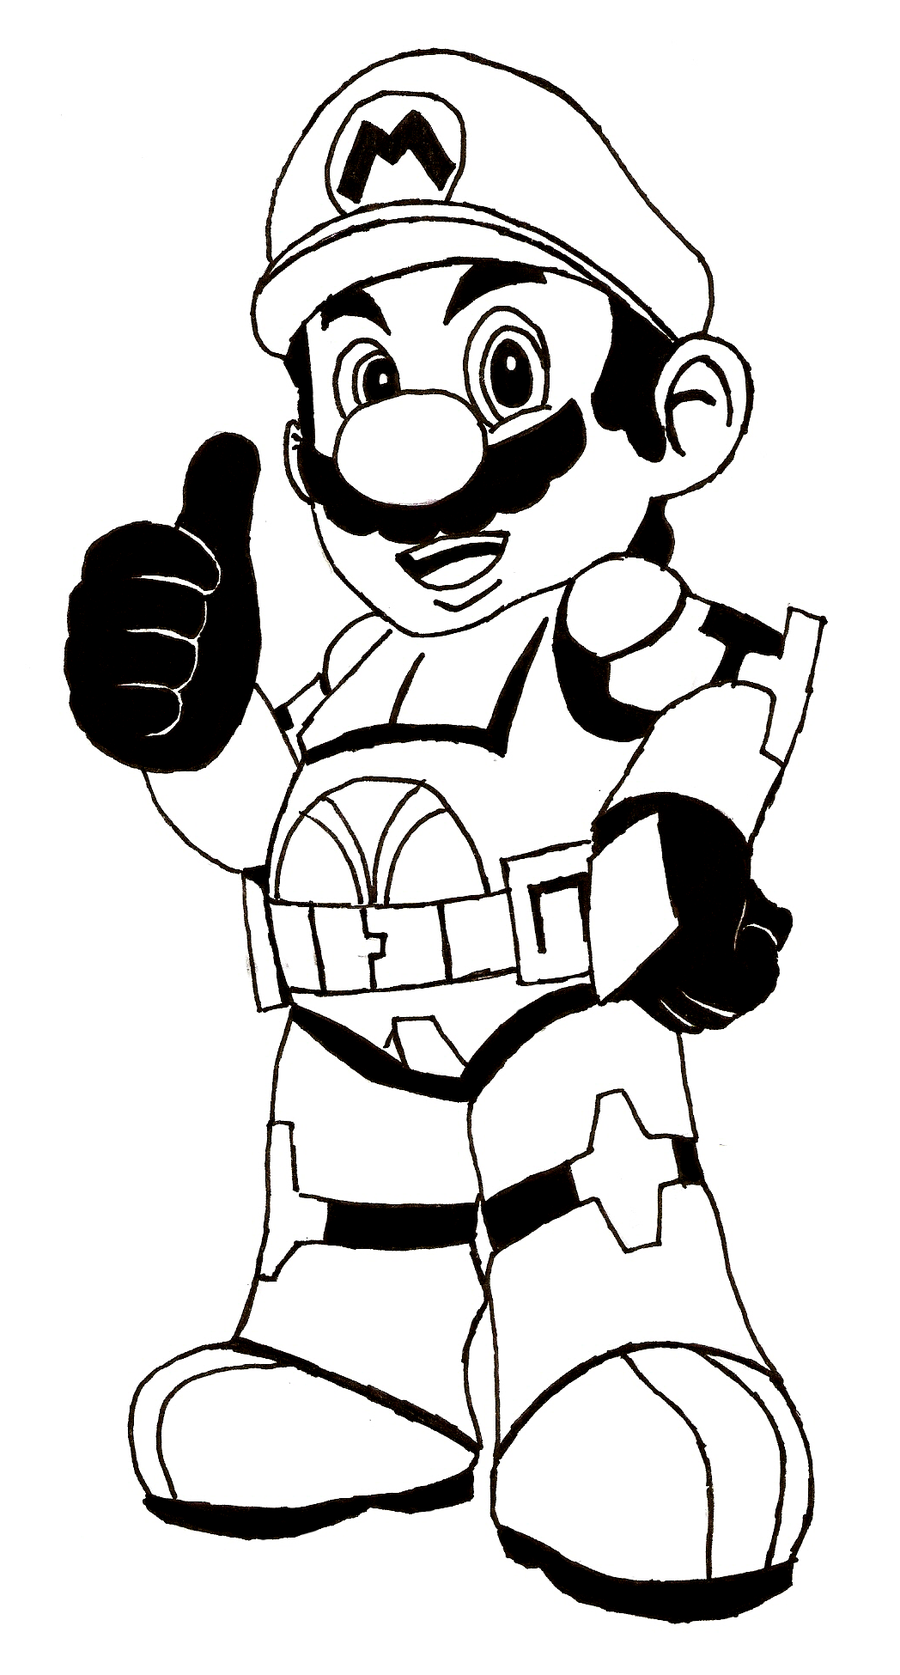 Mario Kart 8 Coloring Pages at GetDrawings | Free download